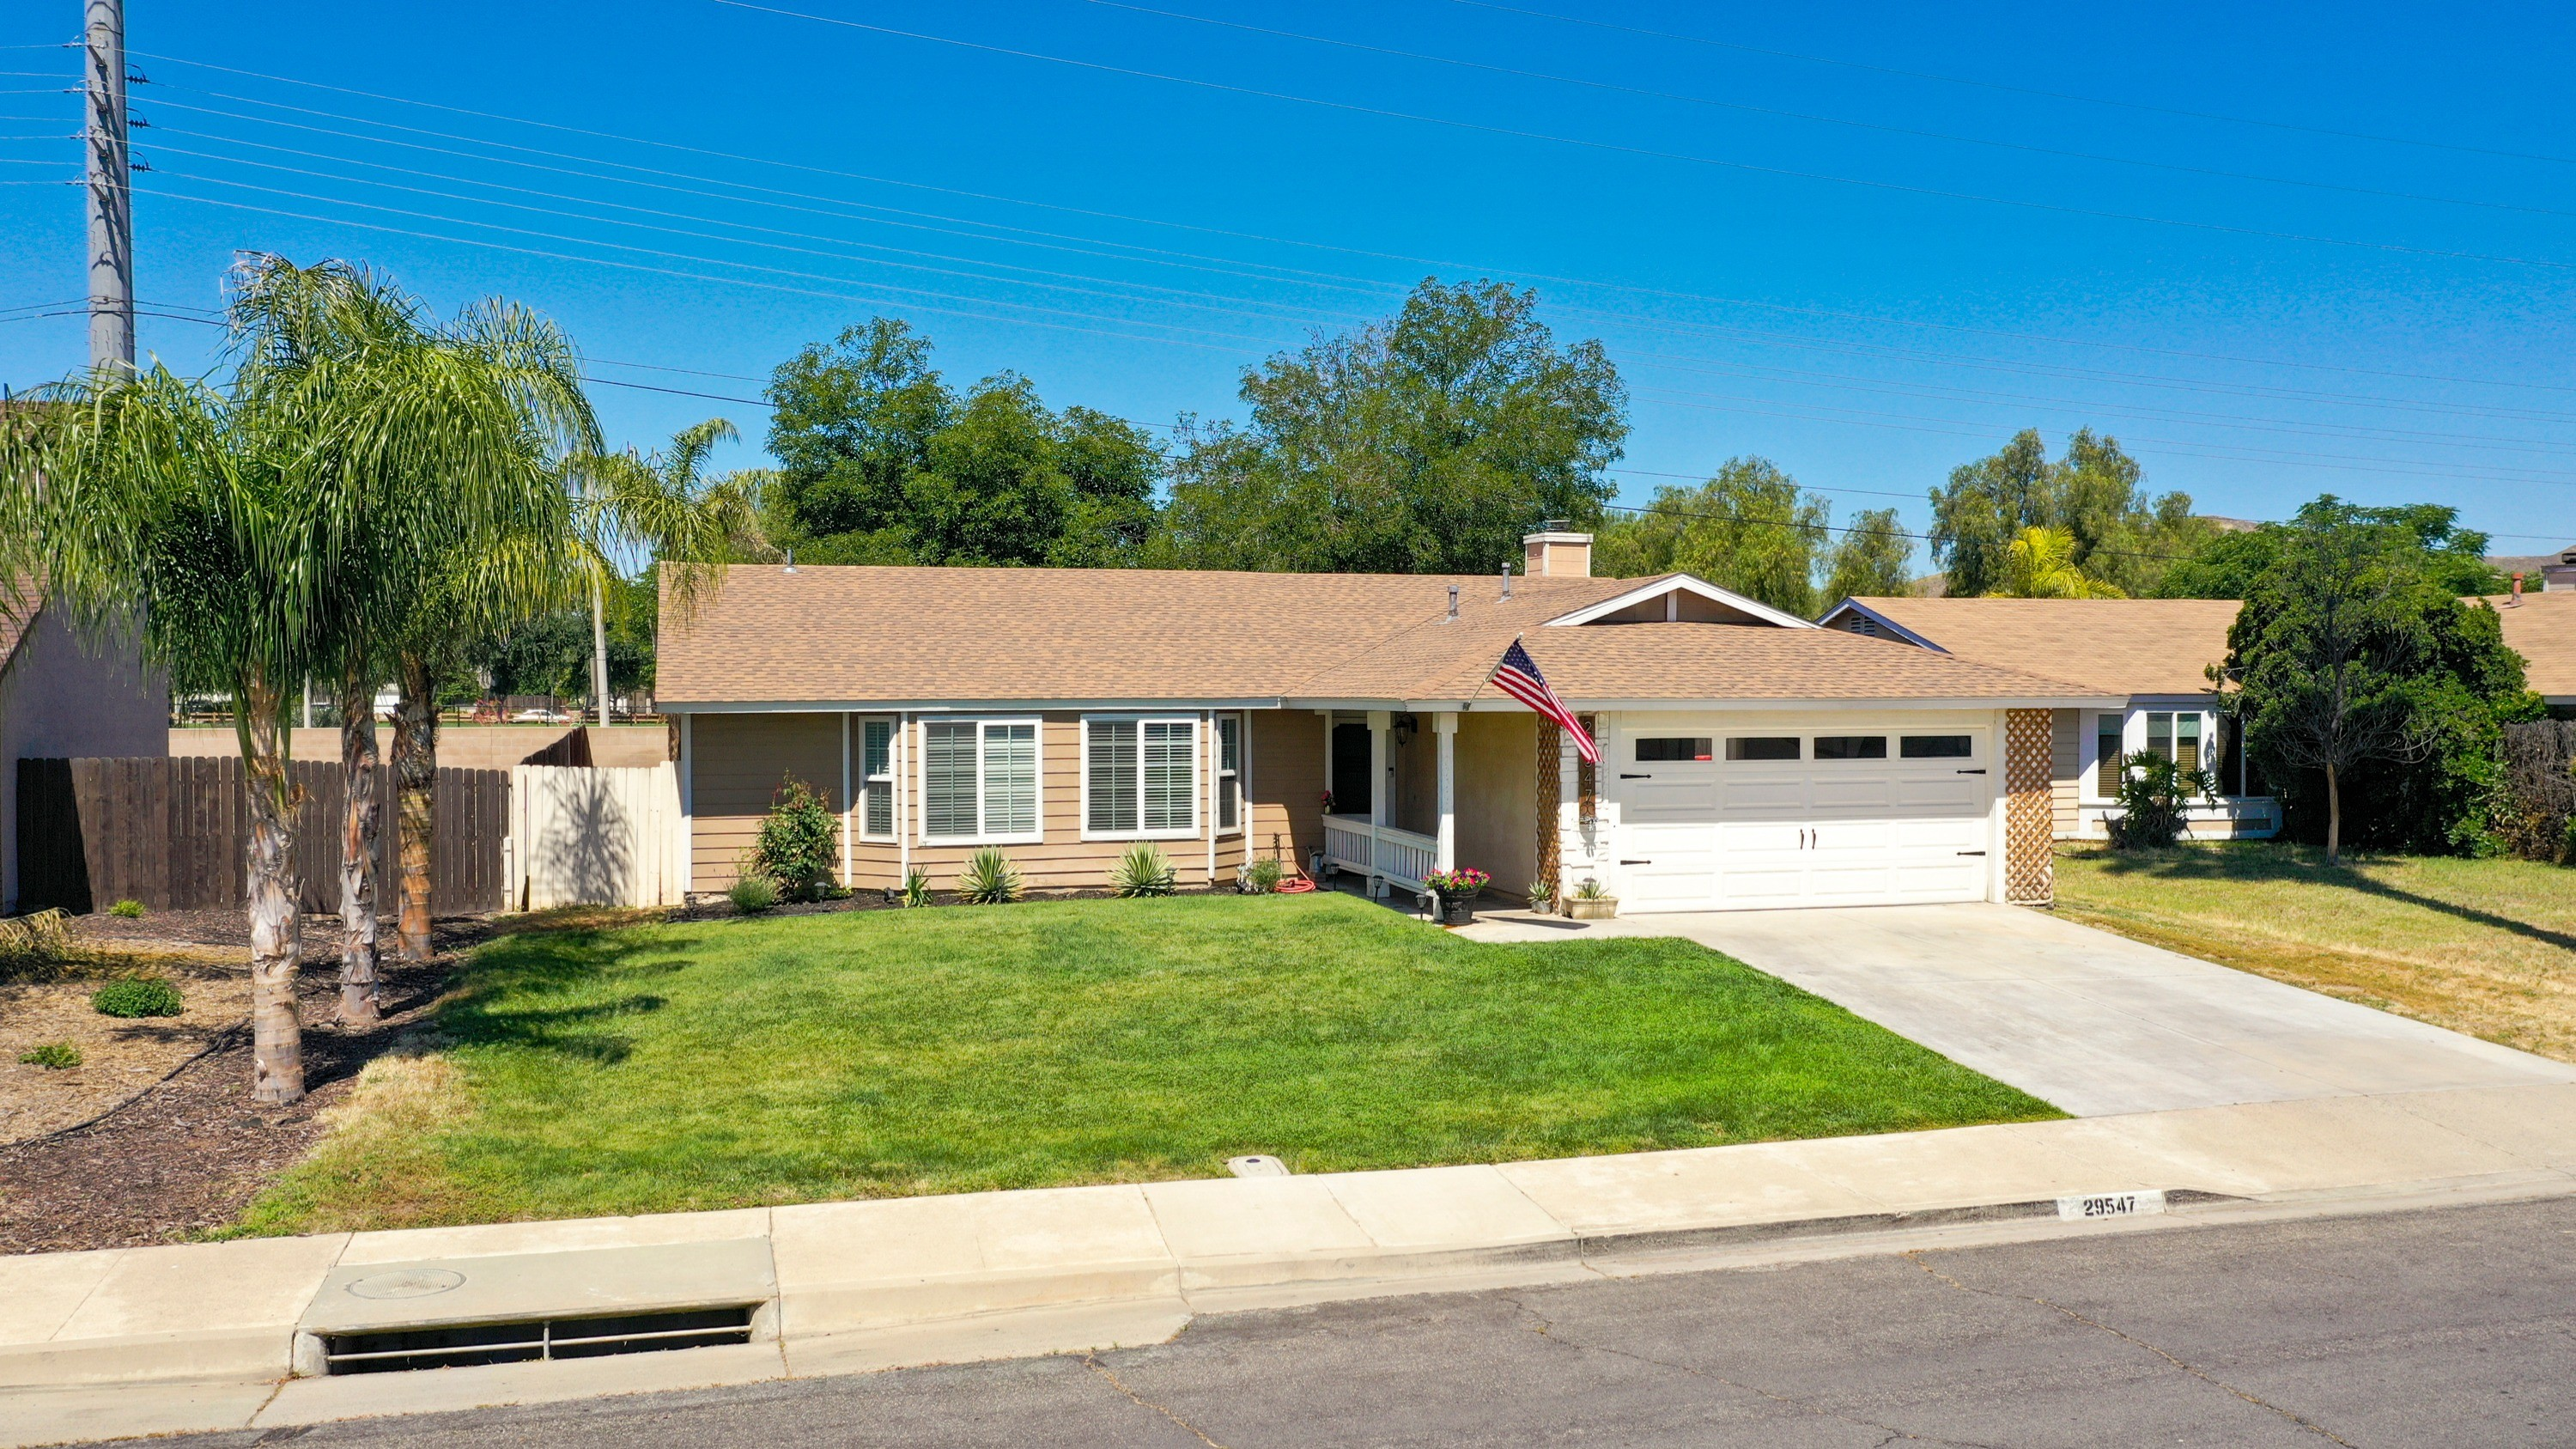 29547 Mt Bachelor Way Menifee, CA 92586